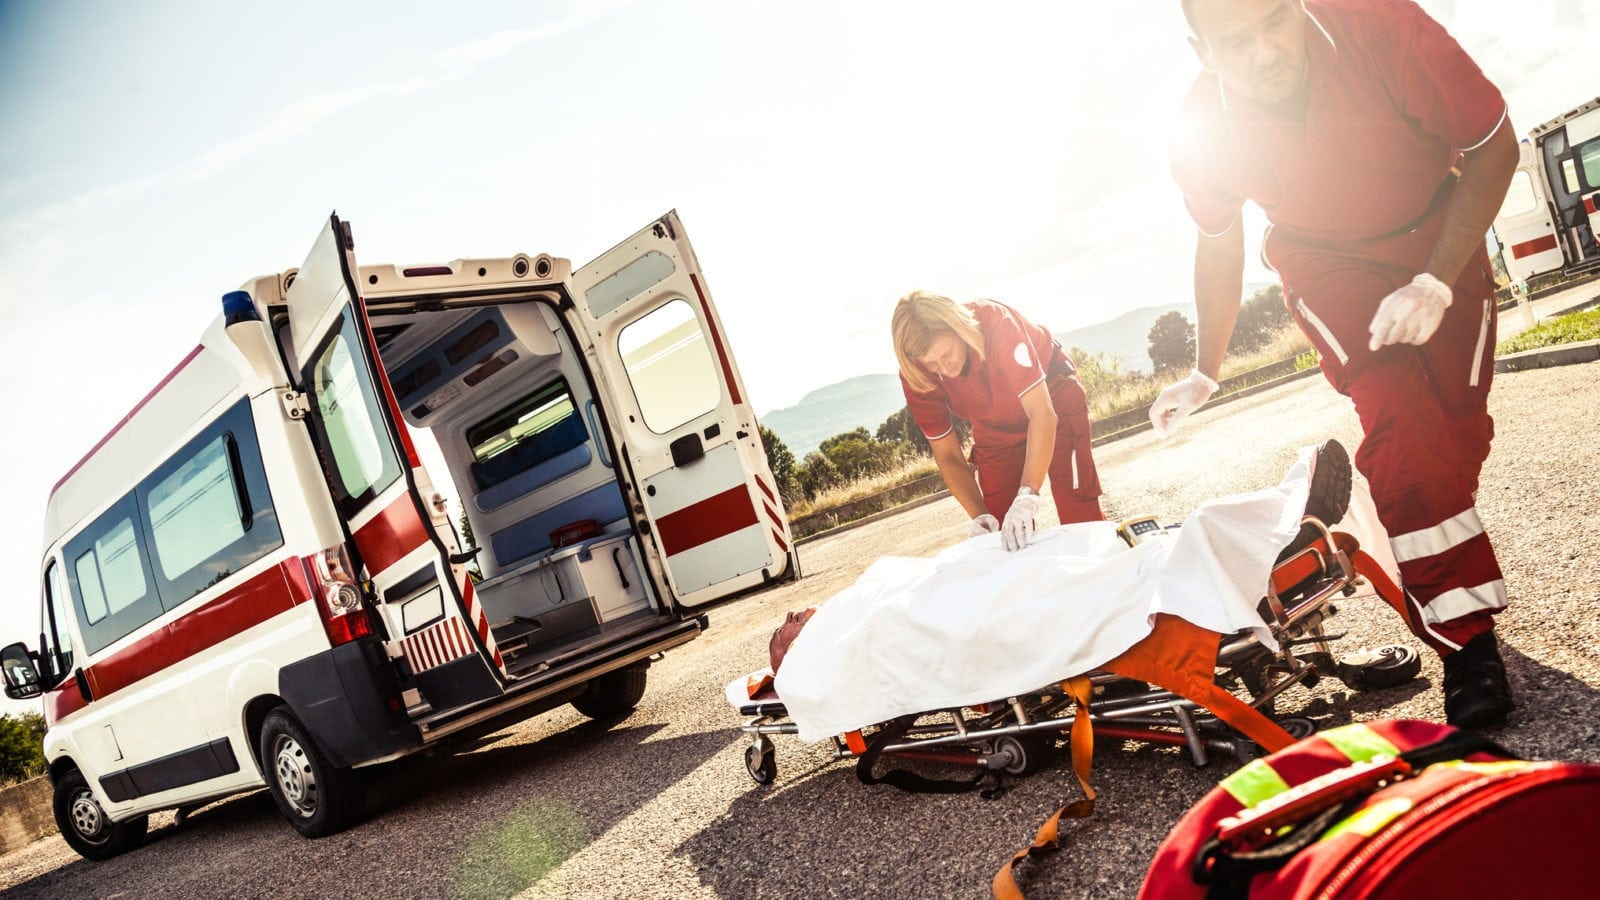 Paramedics Loading An Injured Man Onto A Stretcher Stock Photo